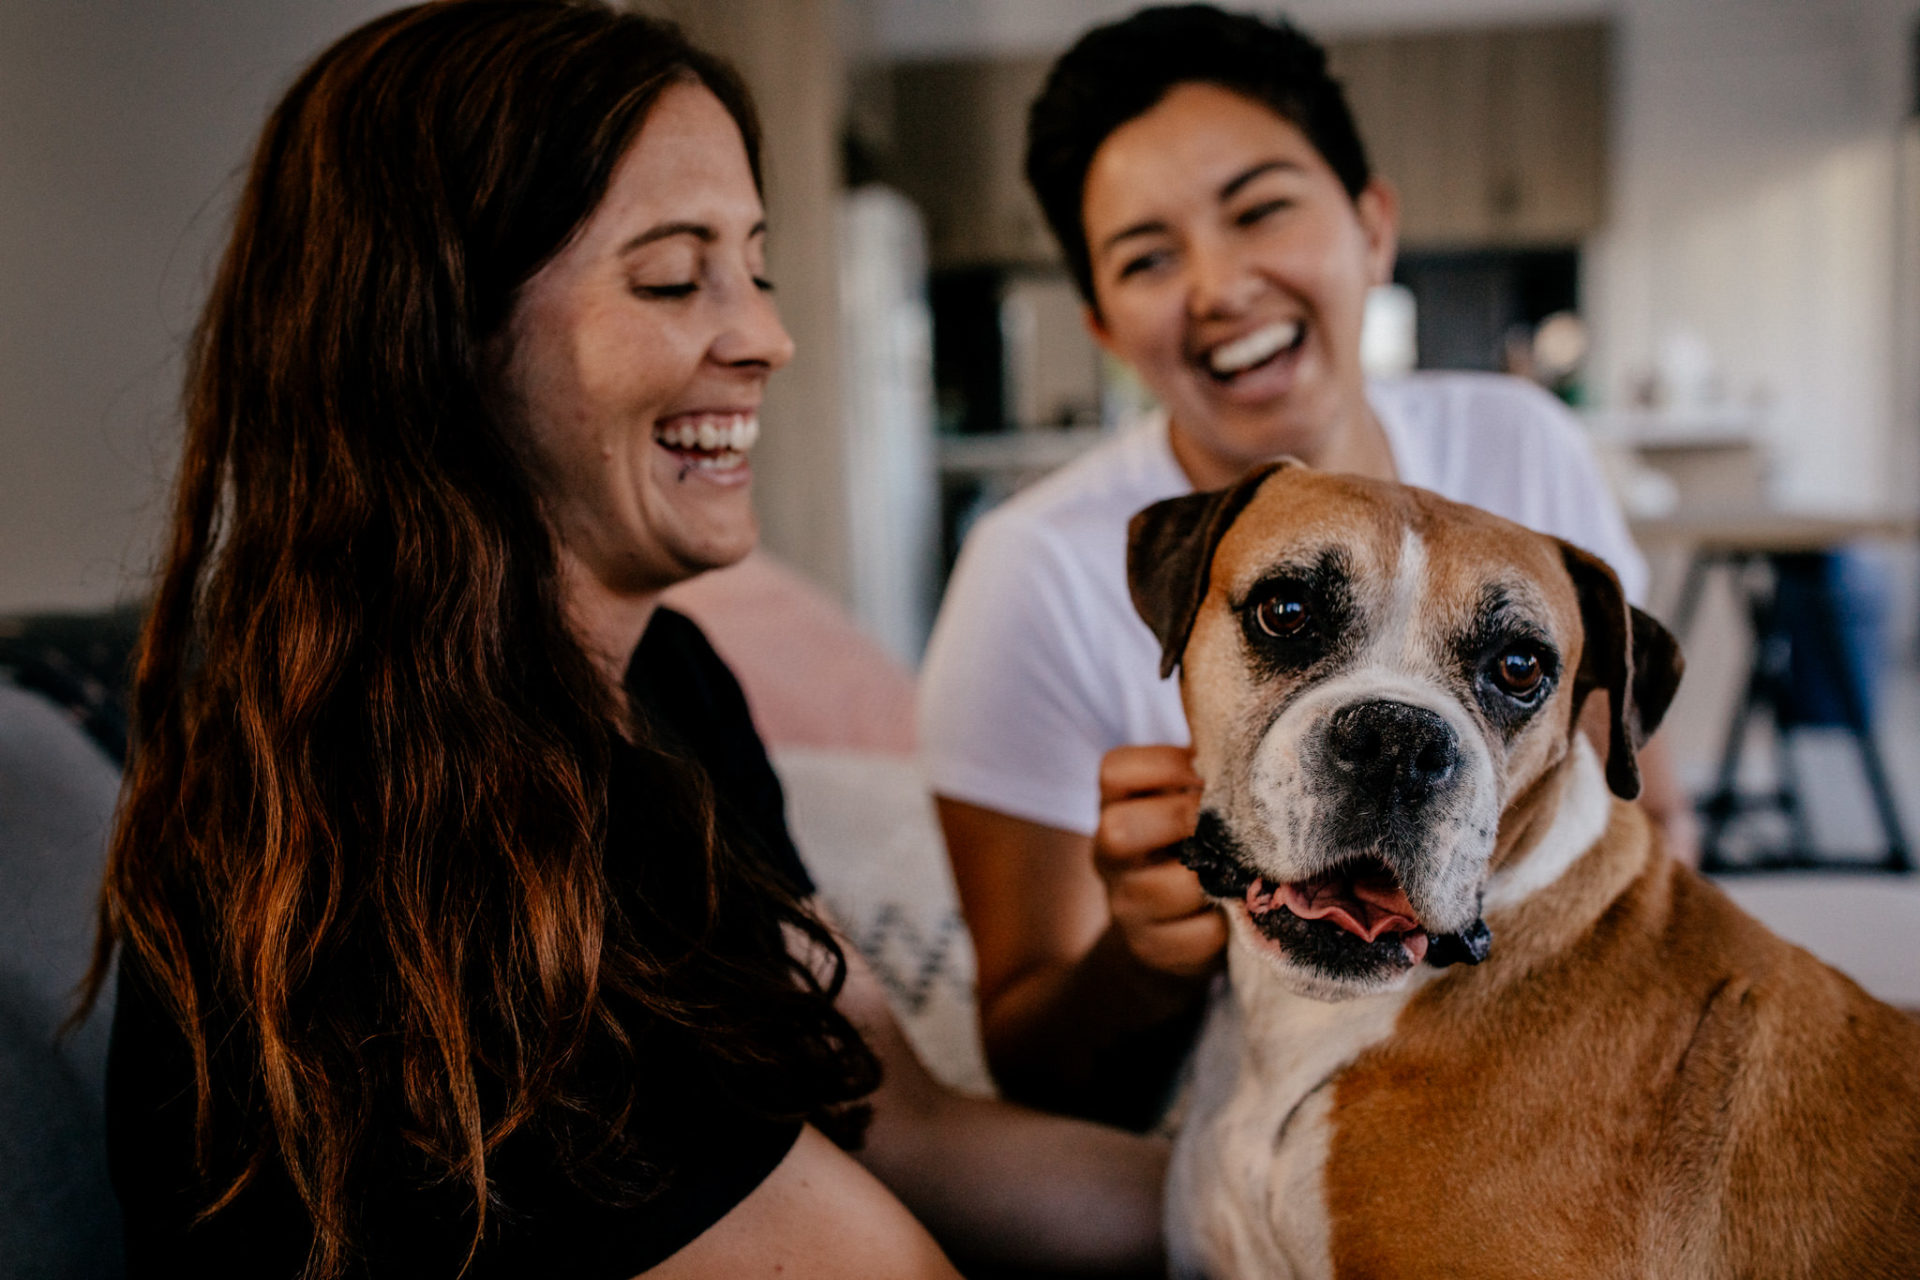 Engagement-photos-Thornbury-lesbian-couple-with-dog-homestory-couple-photos-wedding-photographer